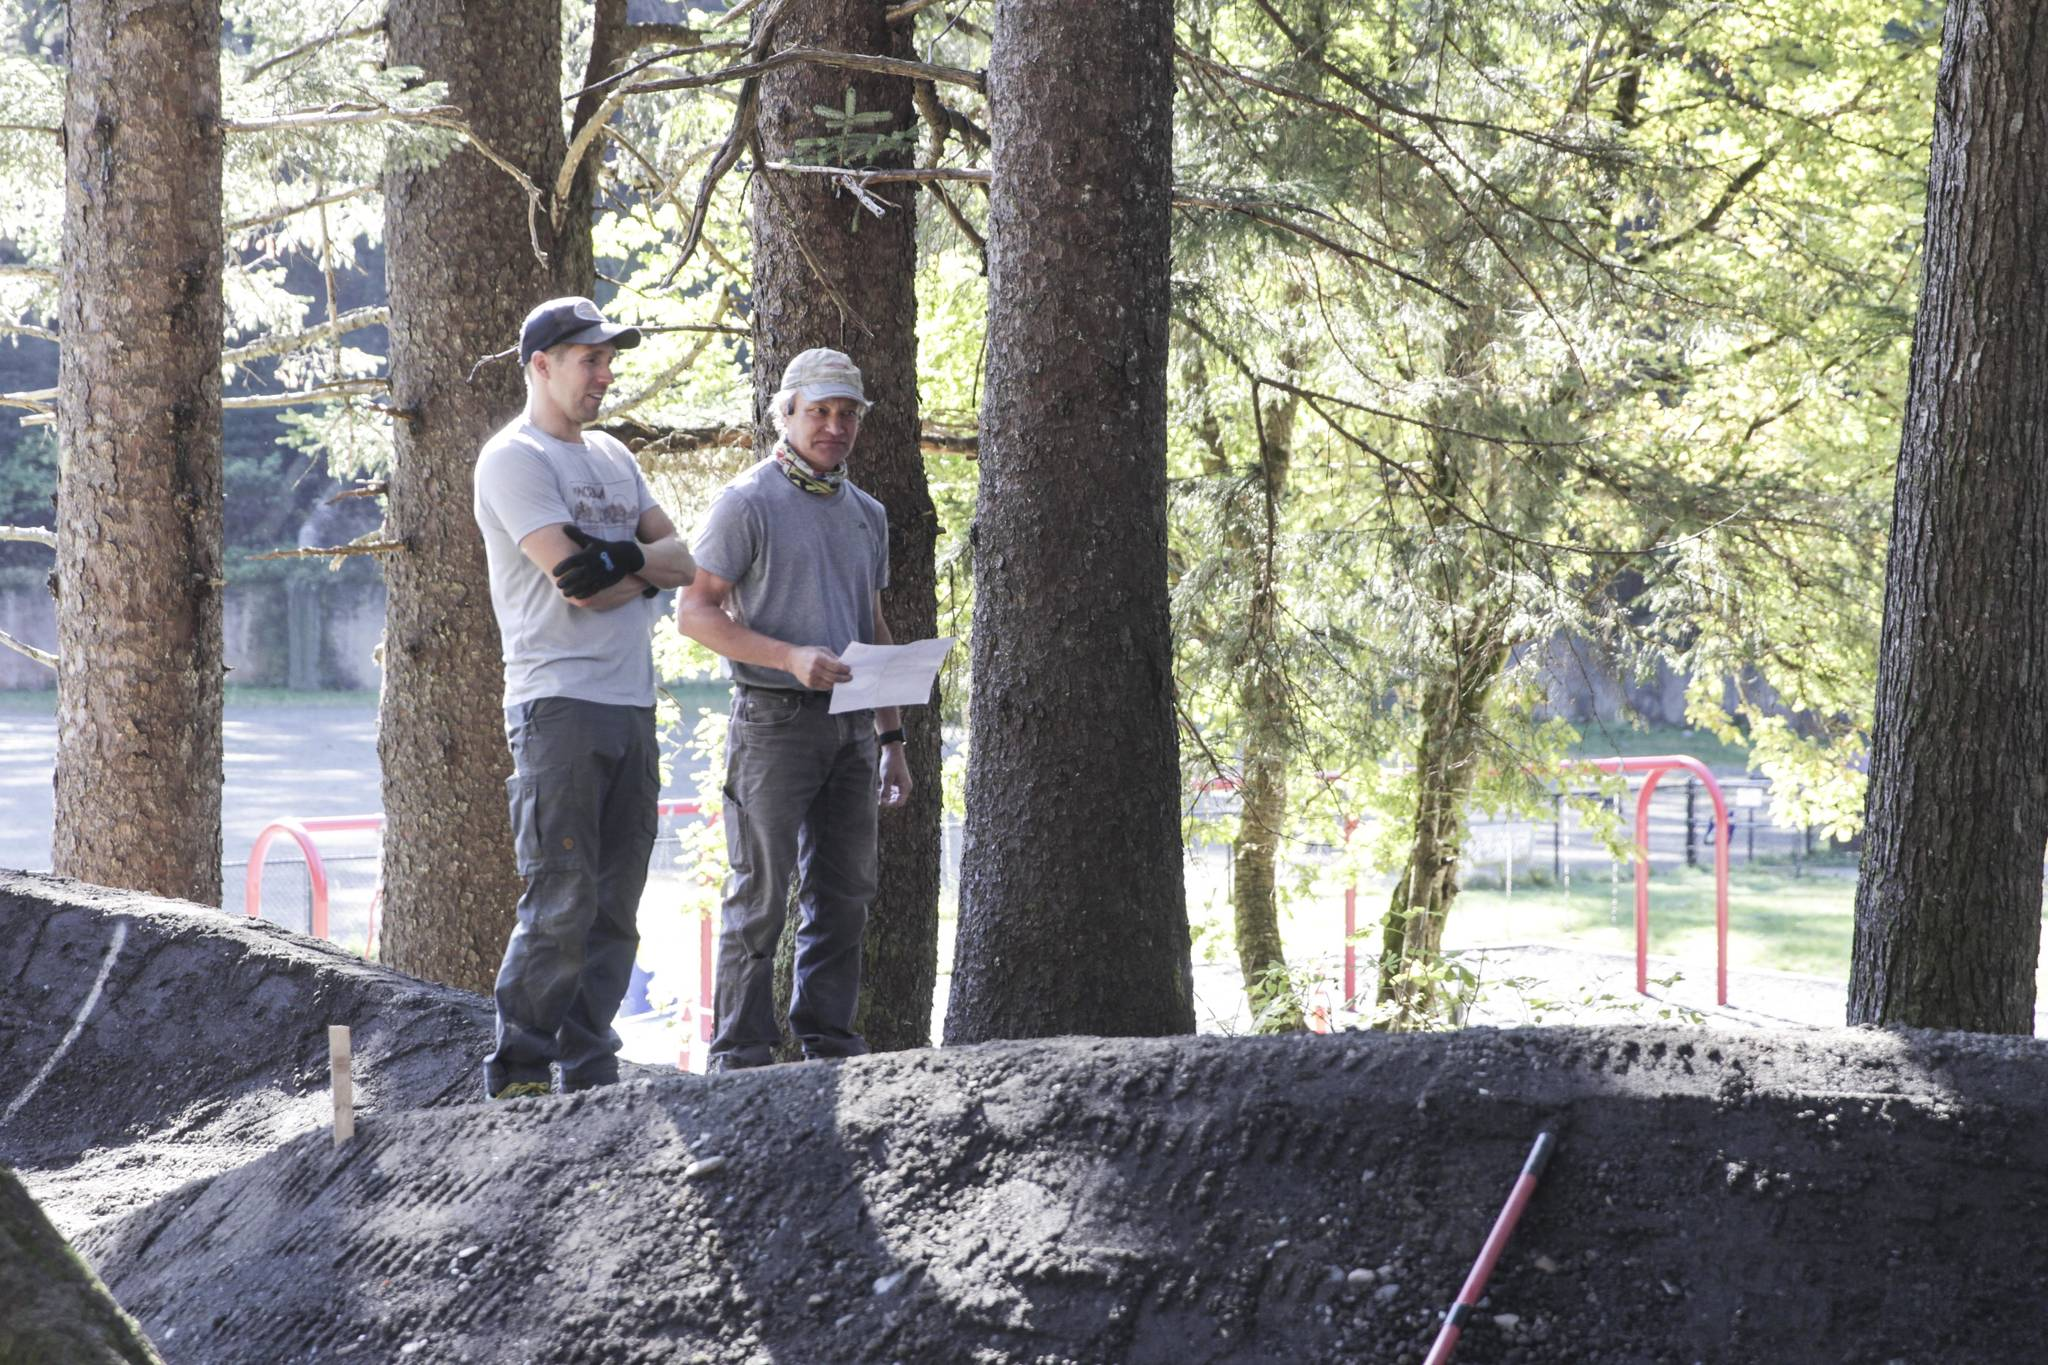 Members of the Juneau Mountain Bike Alliance check the progress of the new pump track against the plans.